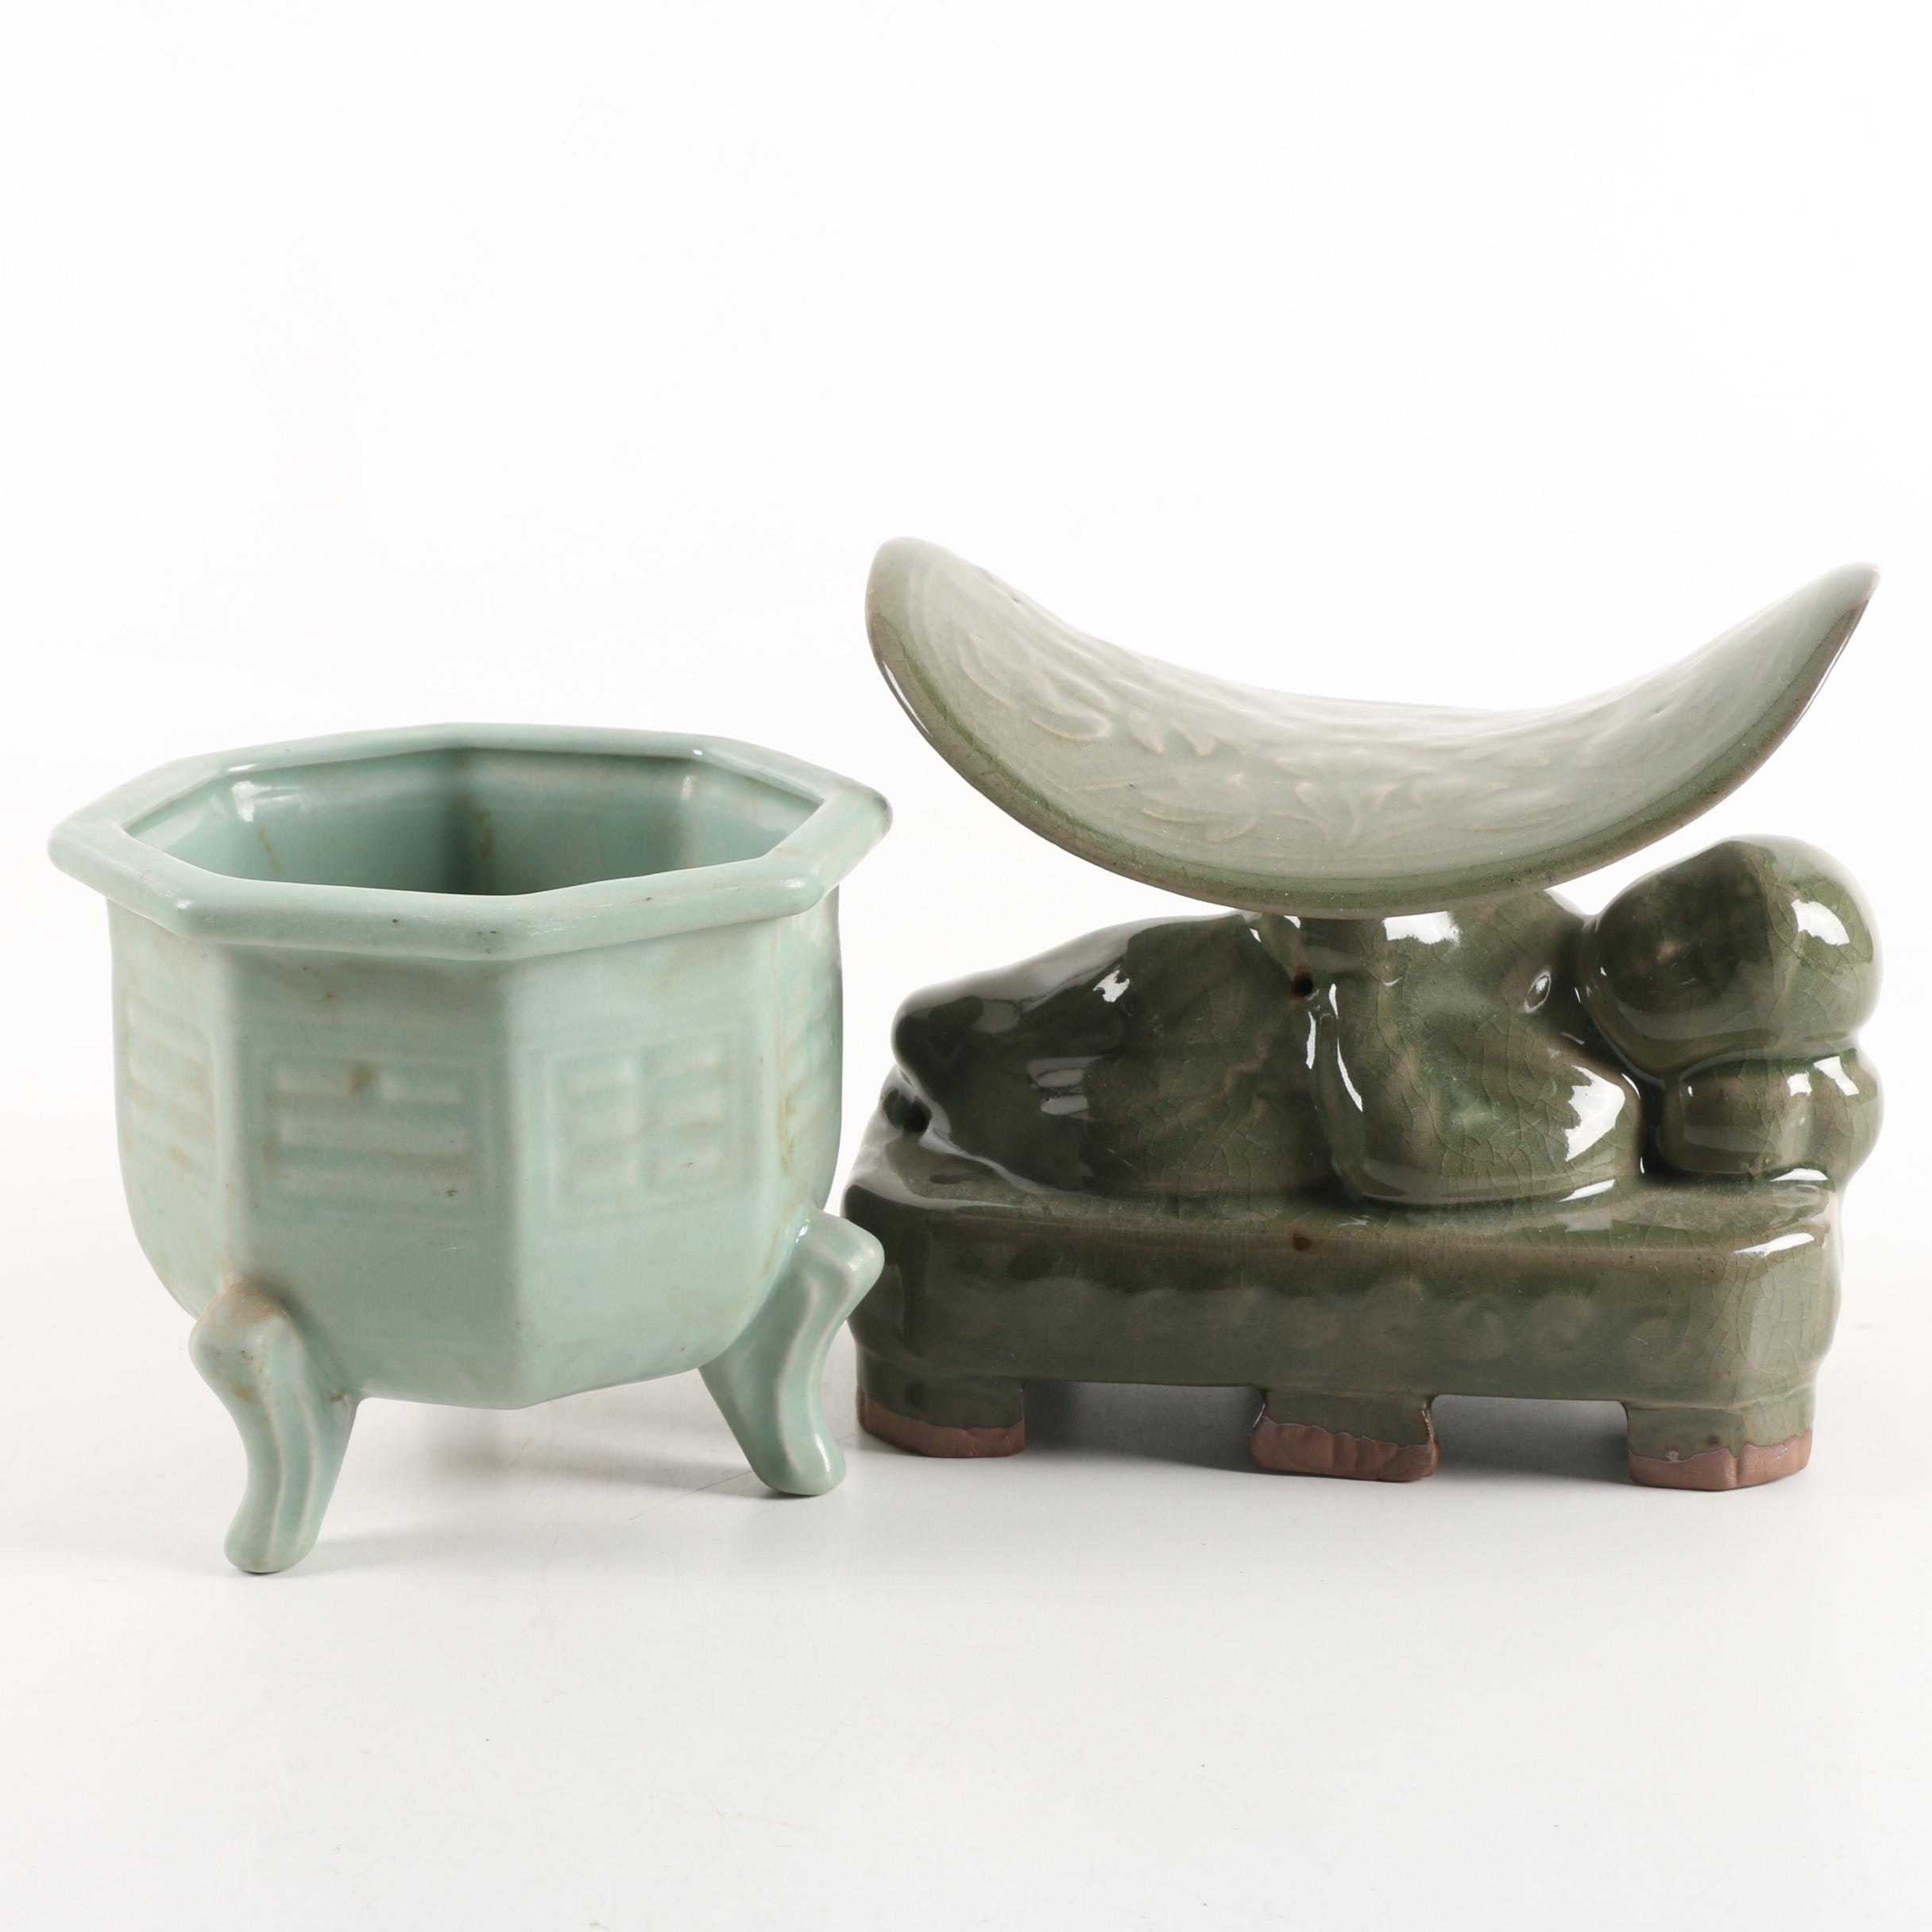 Chinese Celadon Ceramic Pillow and Bagua Vessel